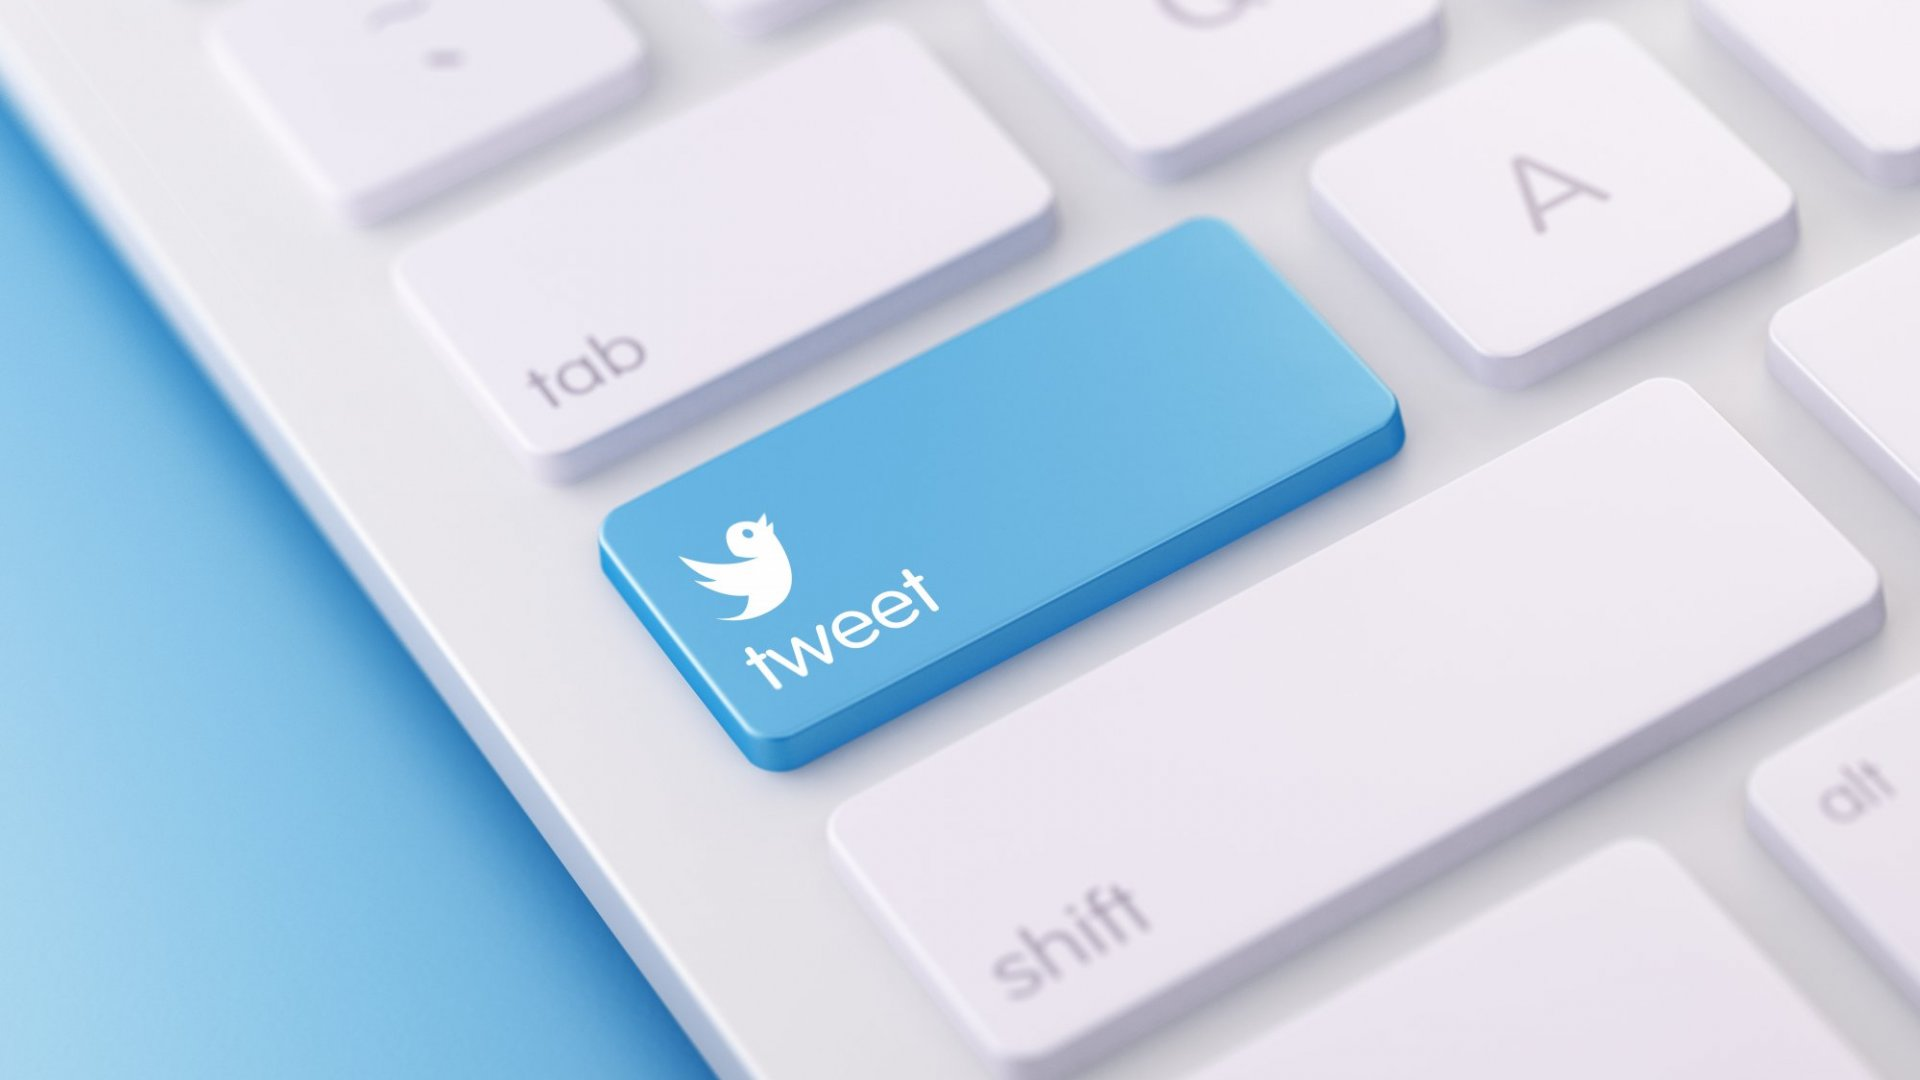 If Your Company Does Not Have a Presence on Twitter, You're Missing a Huge Business Opportunity